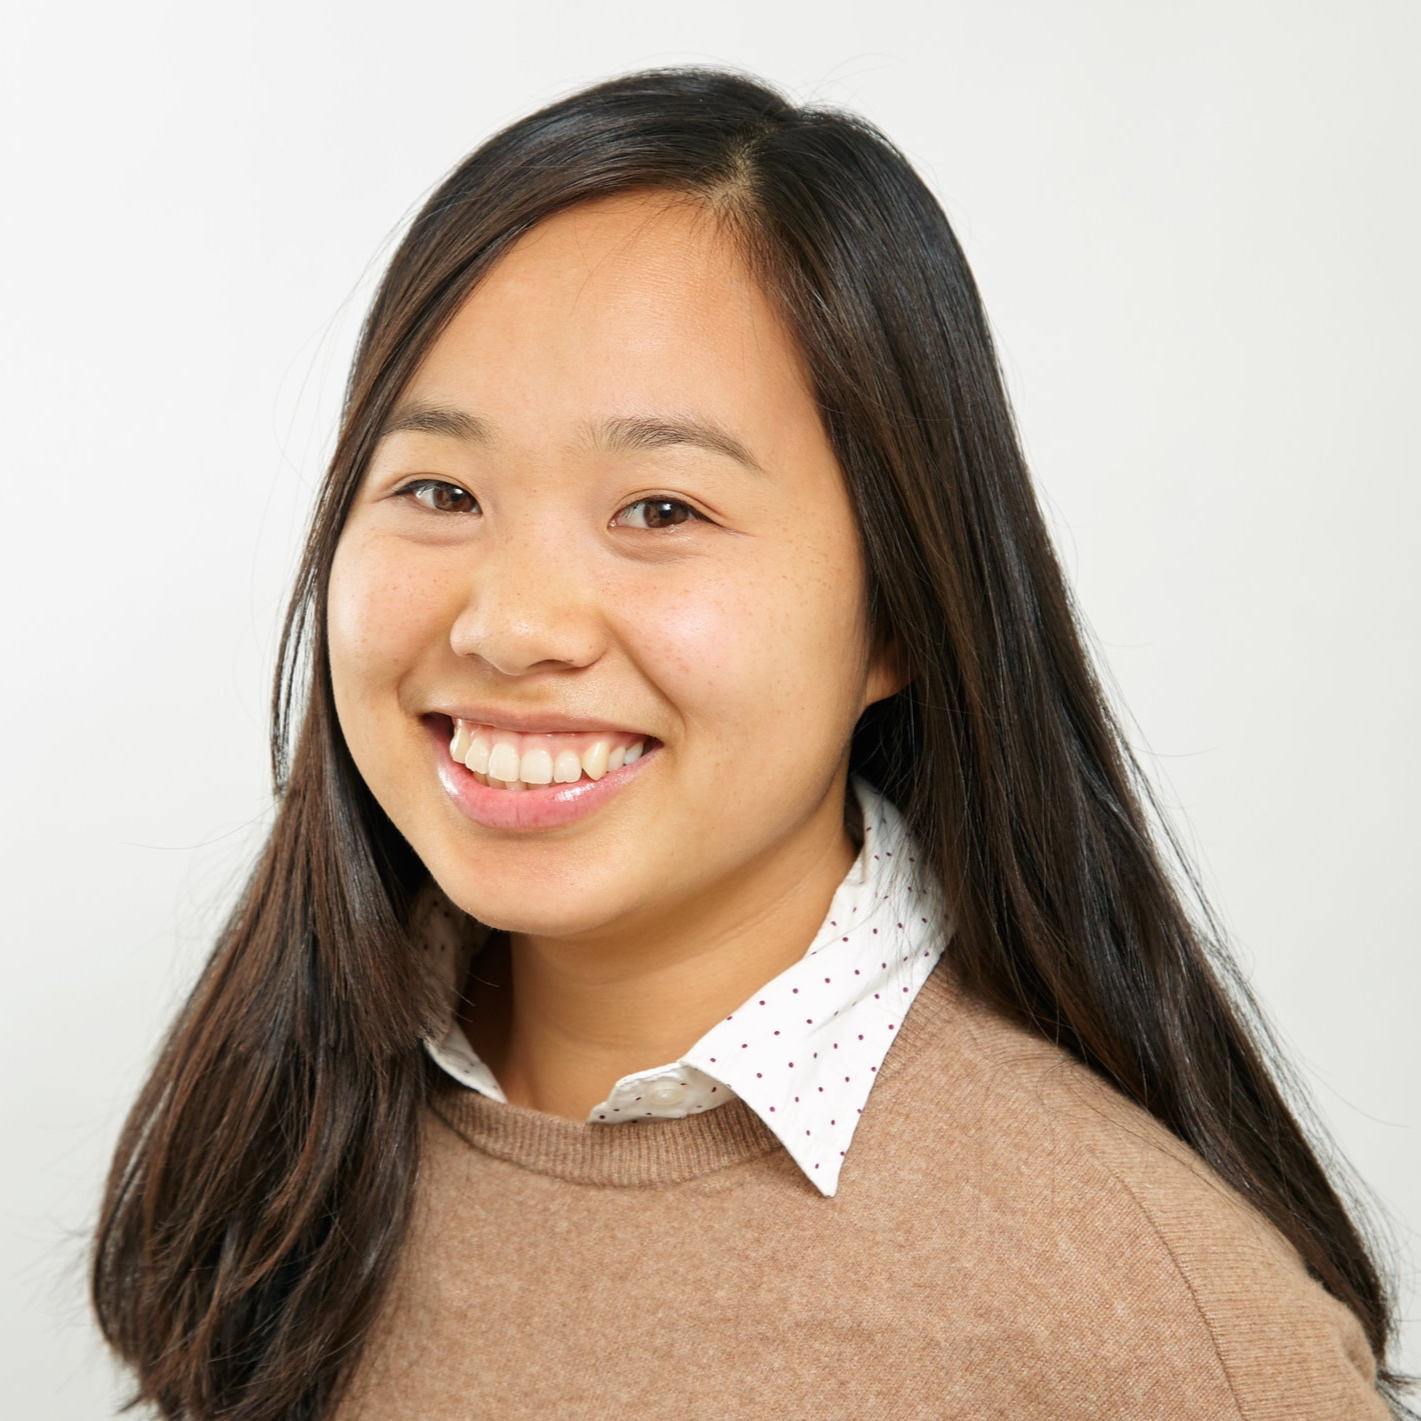 Linh Chuong - Los Angeles, CAPhD Student, UCLA Fielding School of Public Health